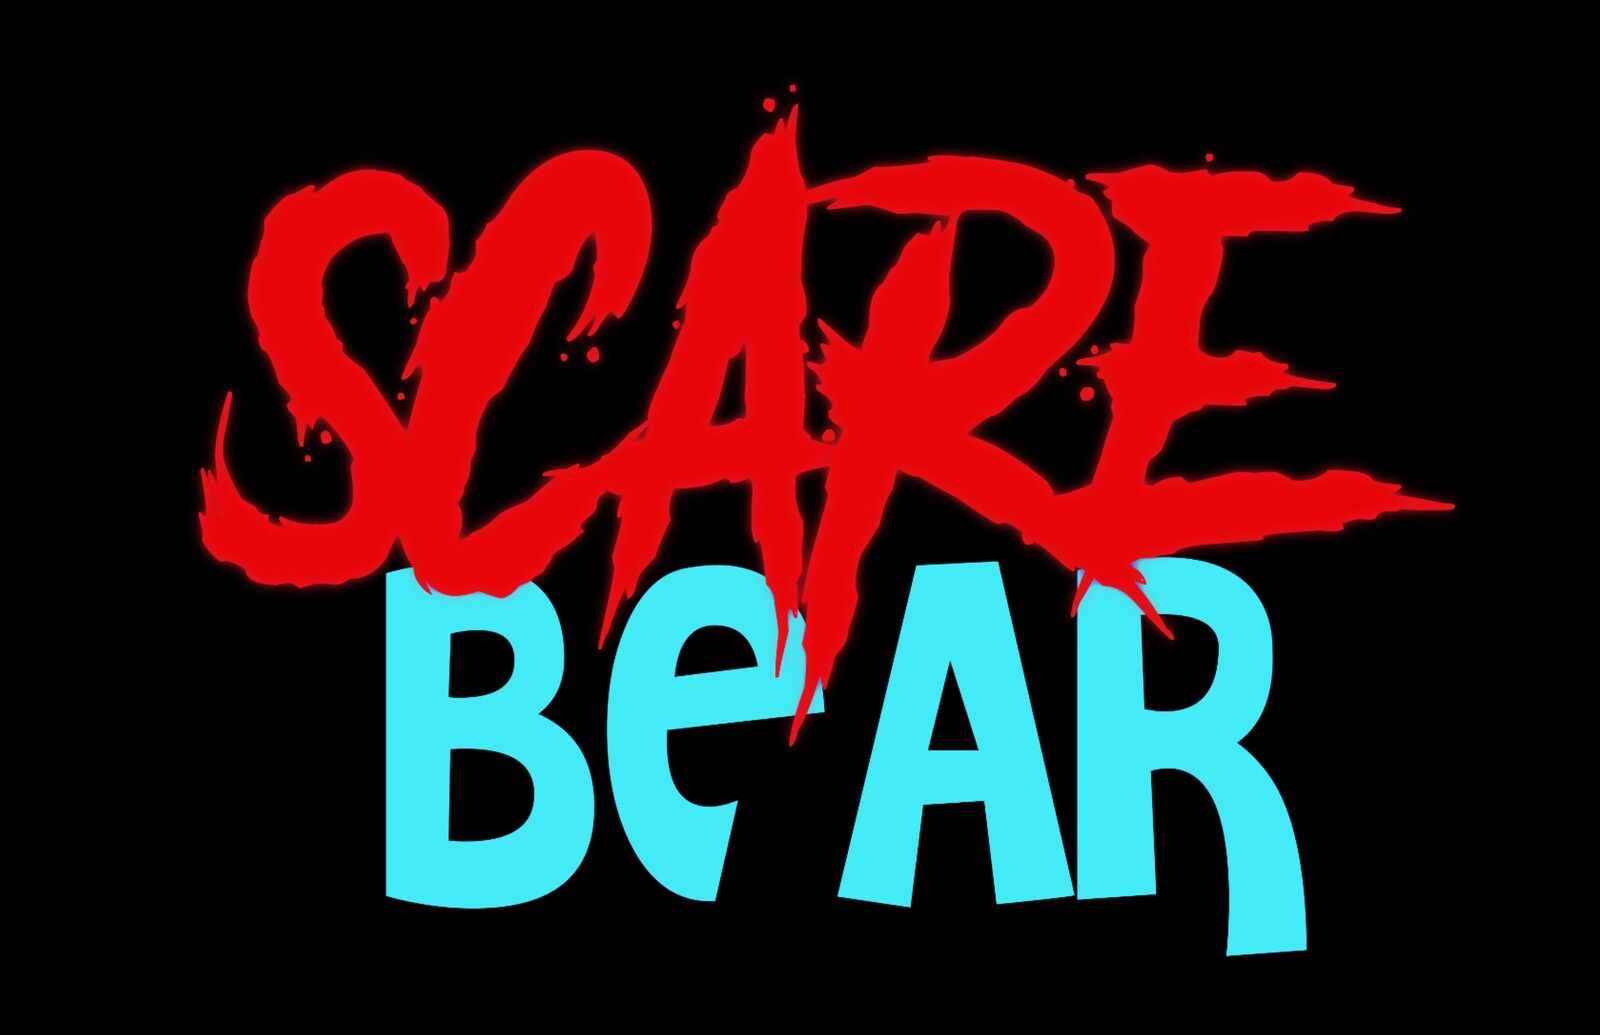 Scare Bear - Title Card